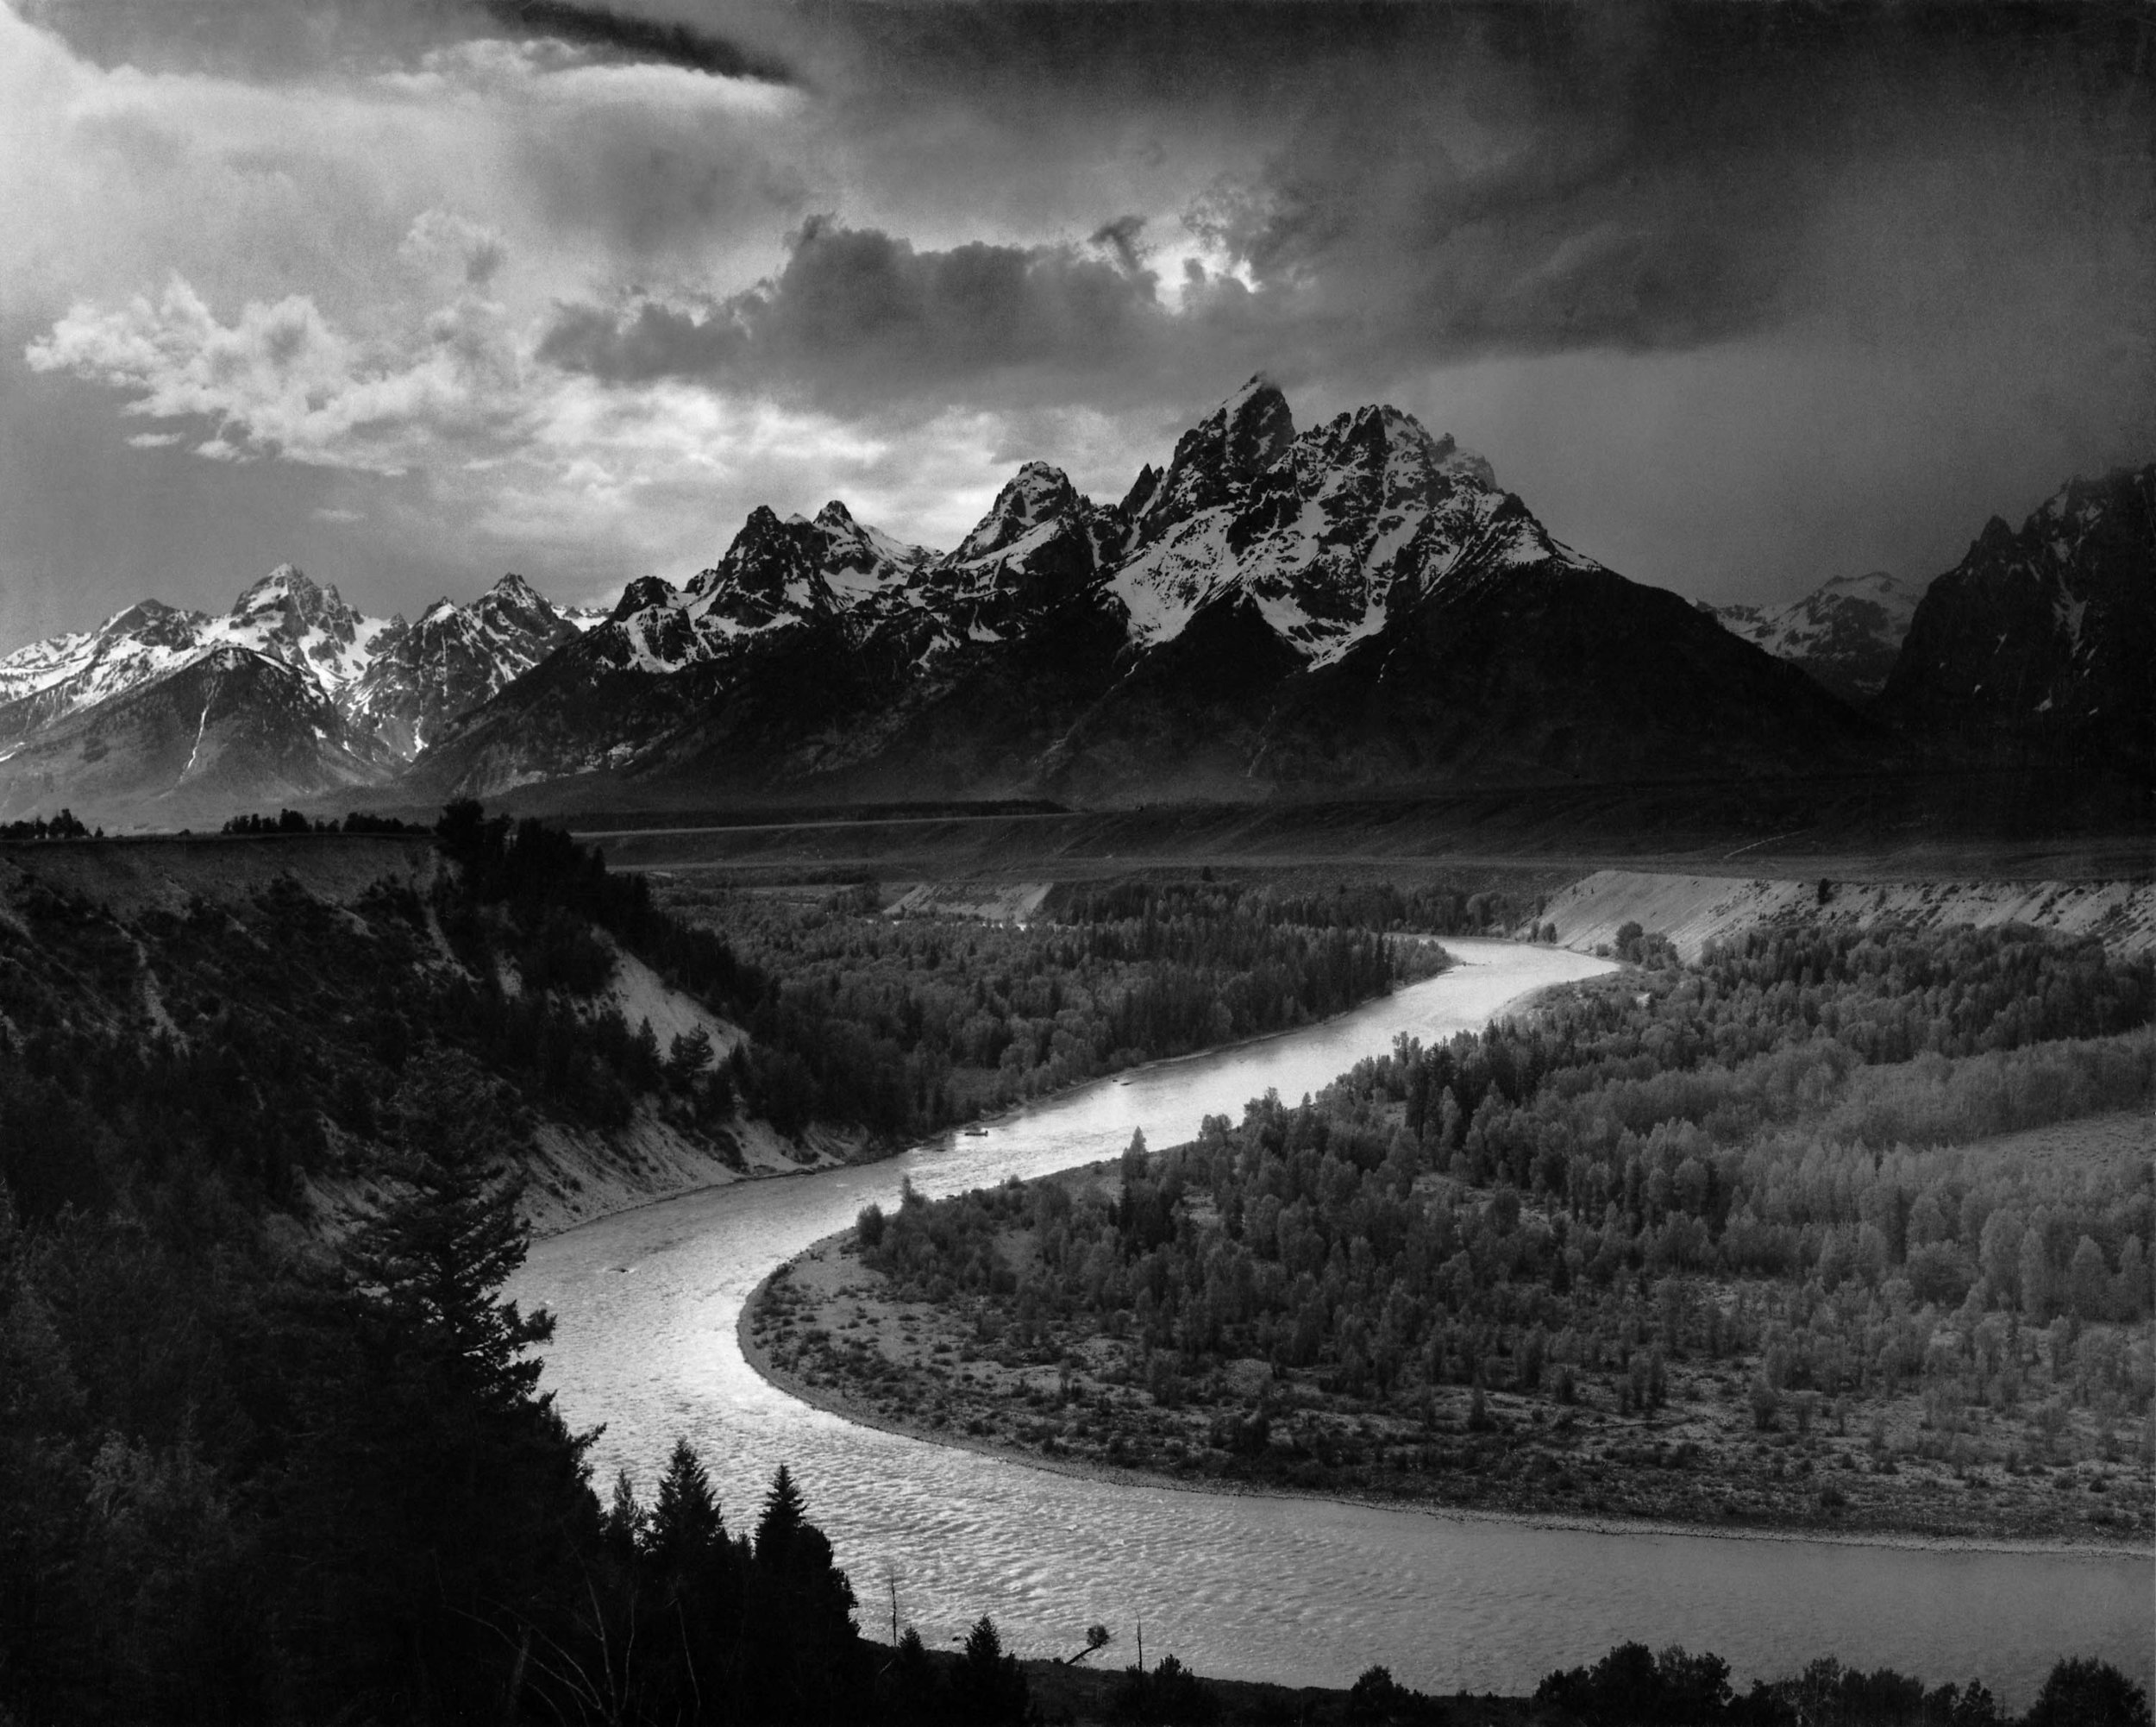 Adams, Ansel. The Tetons and the Snake River. 1942